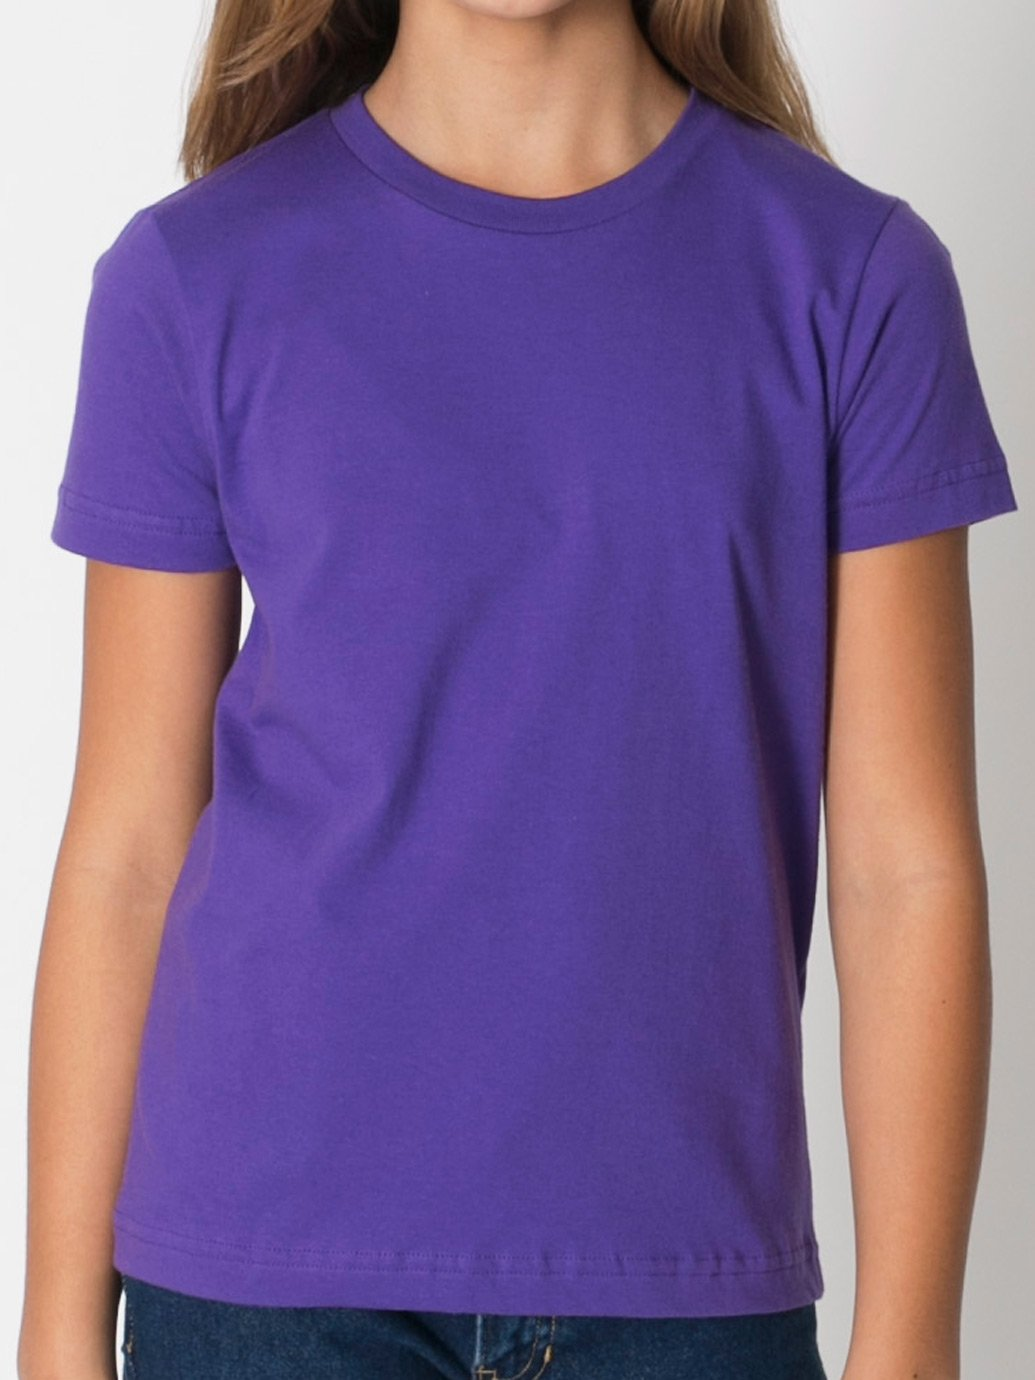 American Apparel Boys Fine Jersey Short-Sleeve T-Shirt (2201) -BABY BLUE -10 by American Apparel (Image #4)